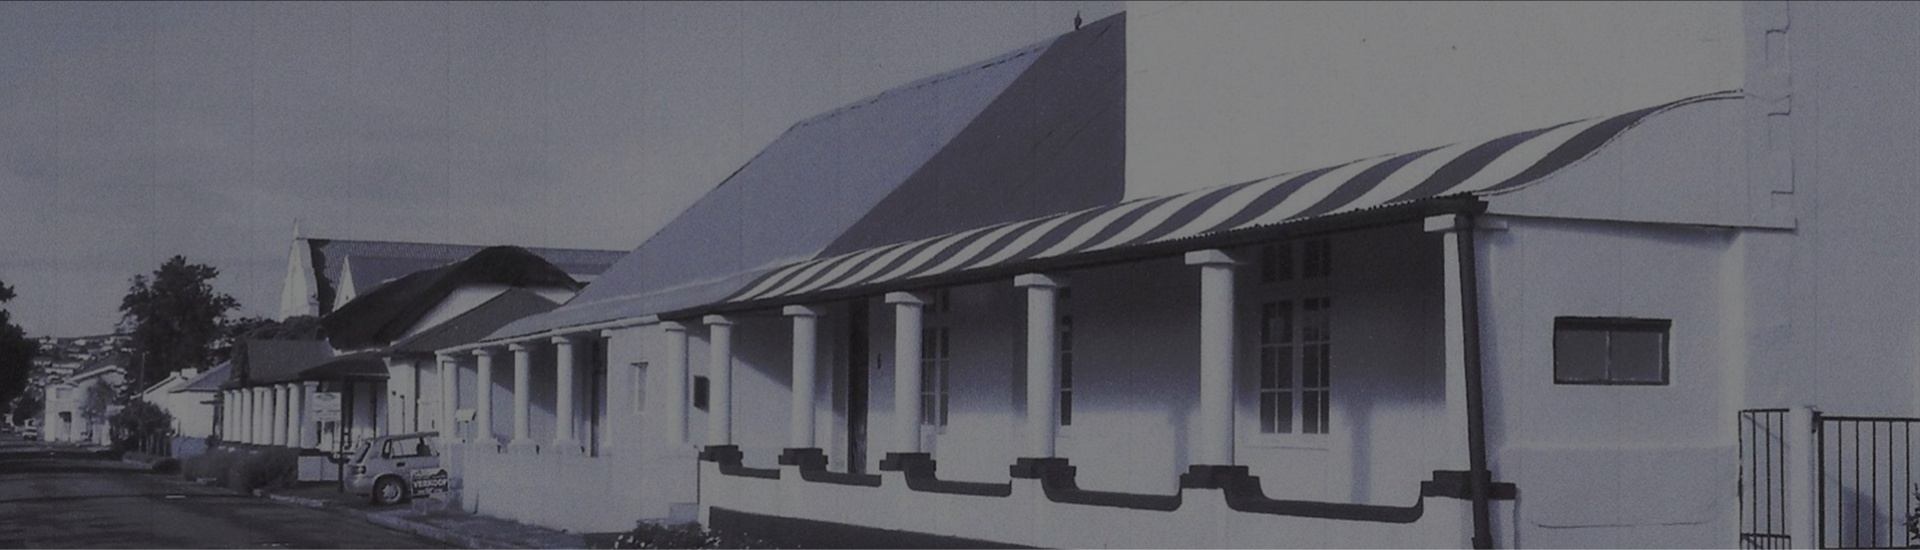 Dedoornkraal Riversdale the history and heritage